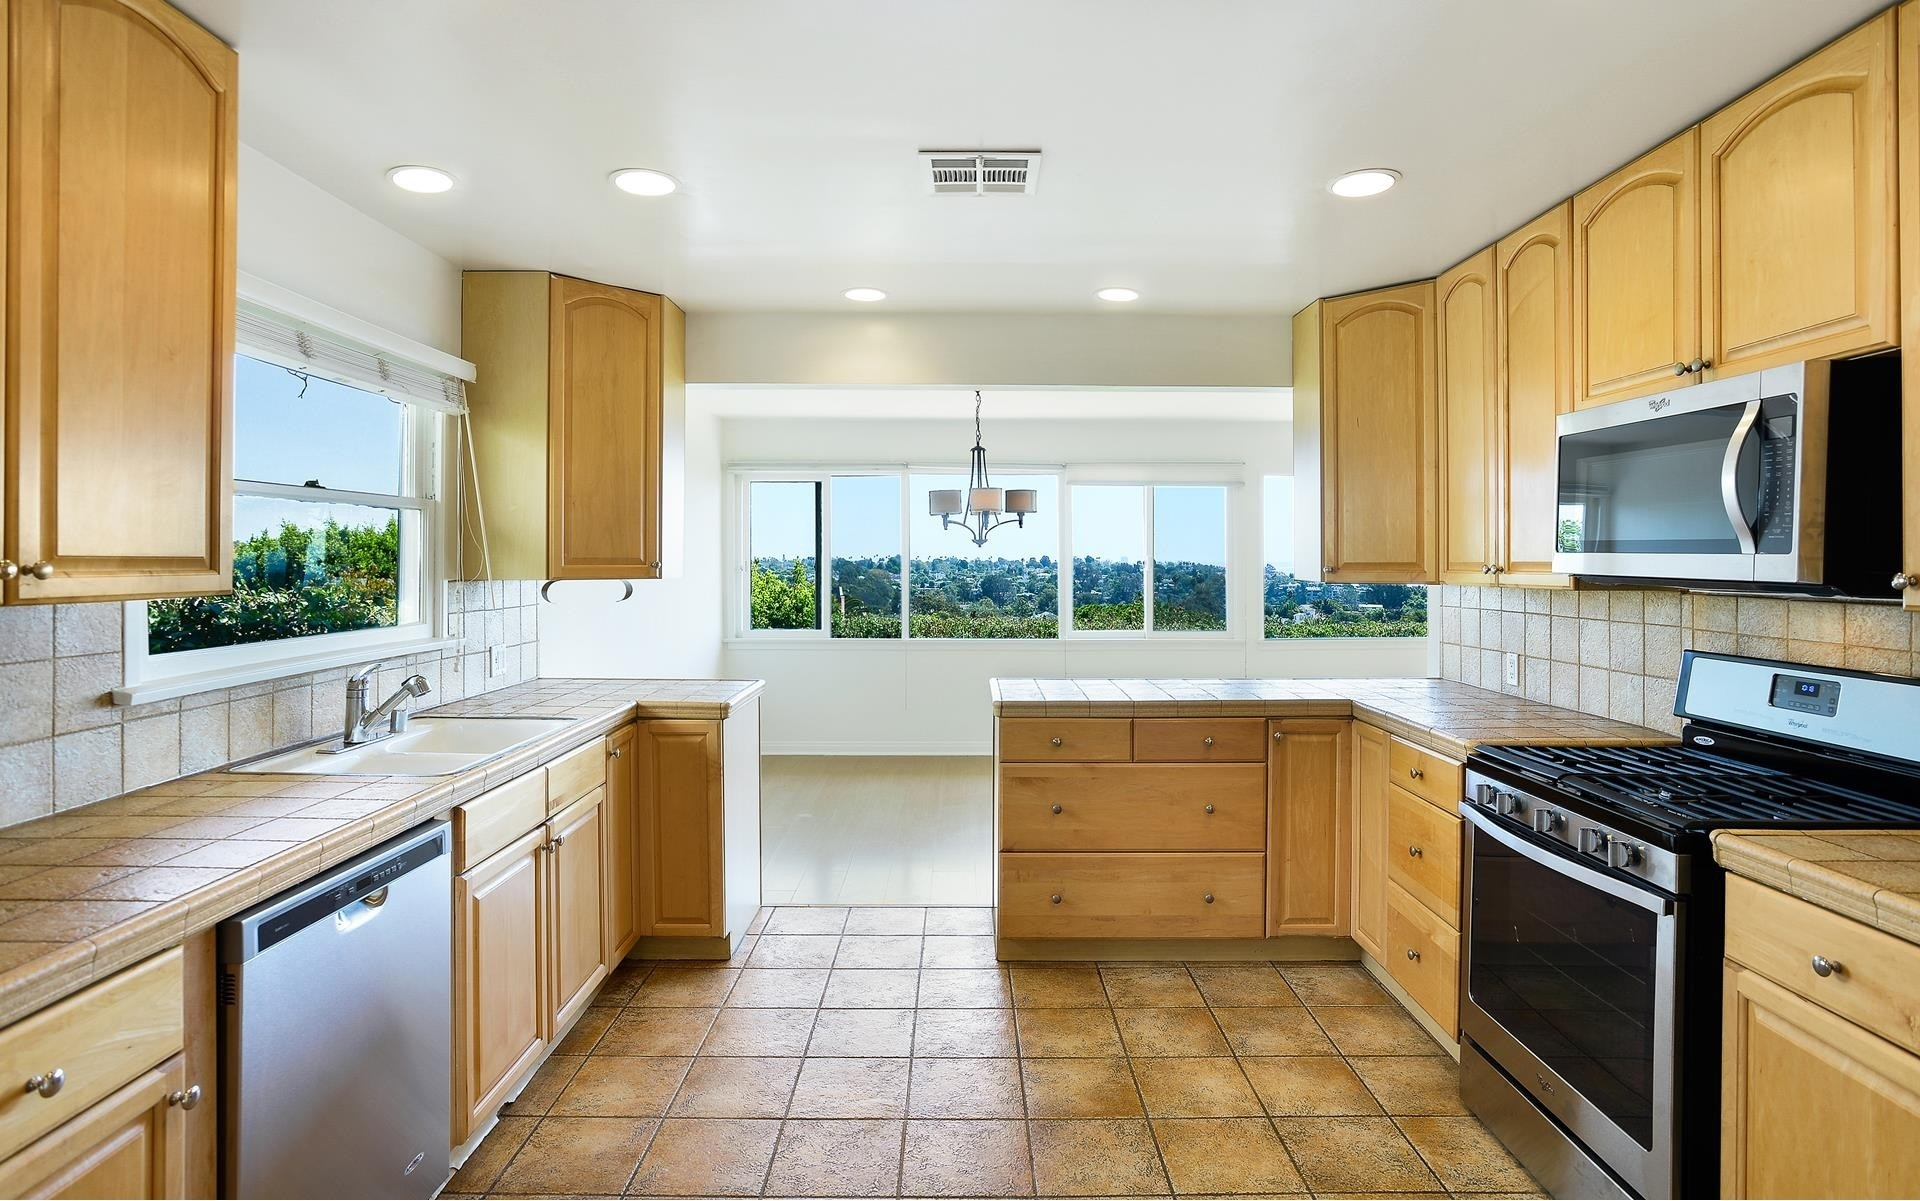 2. Rentals at Pacific Palisades